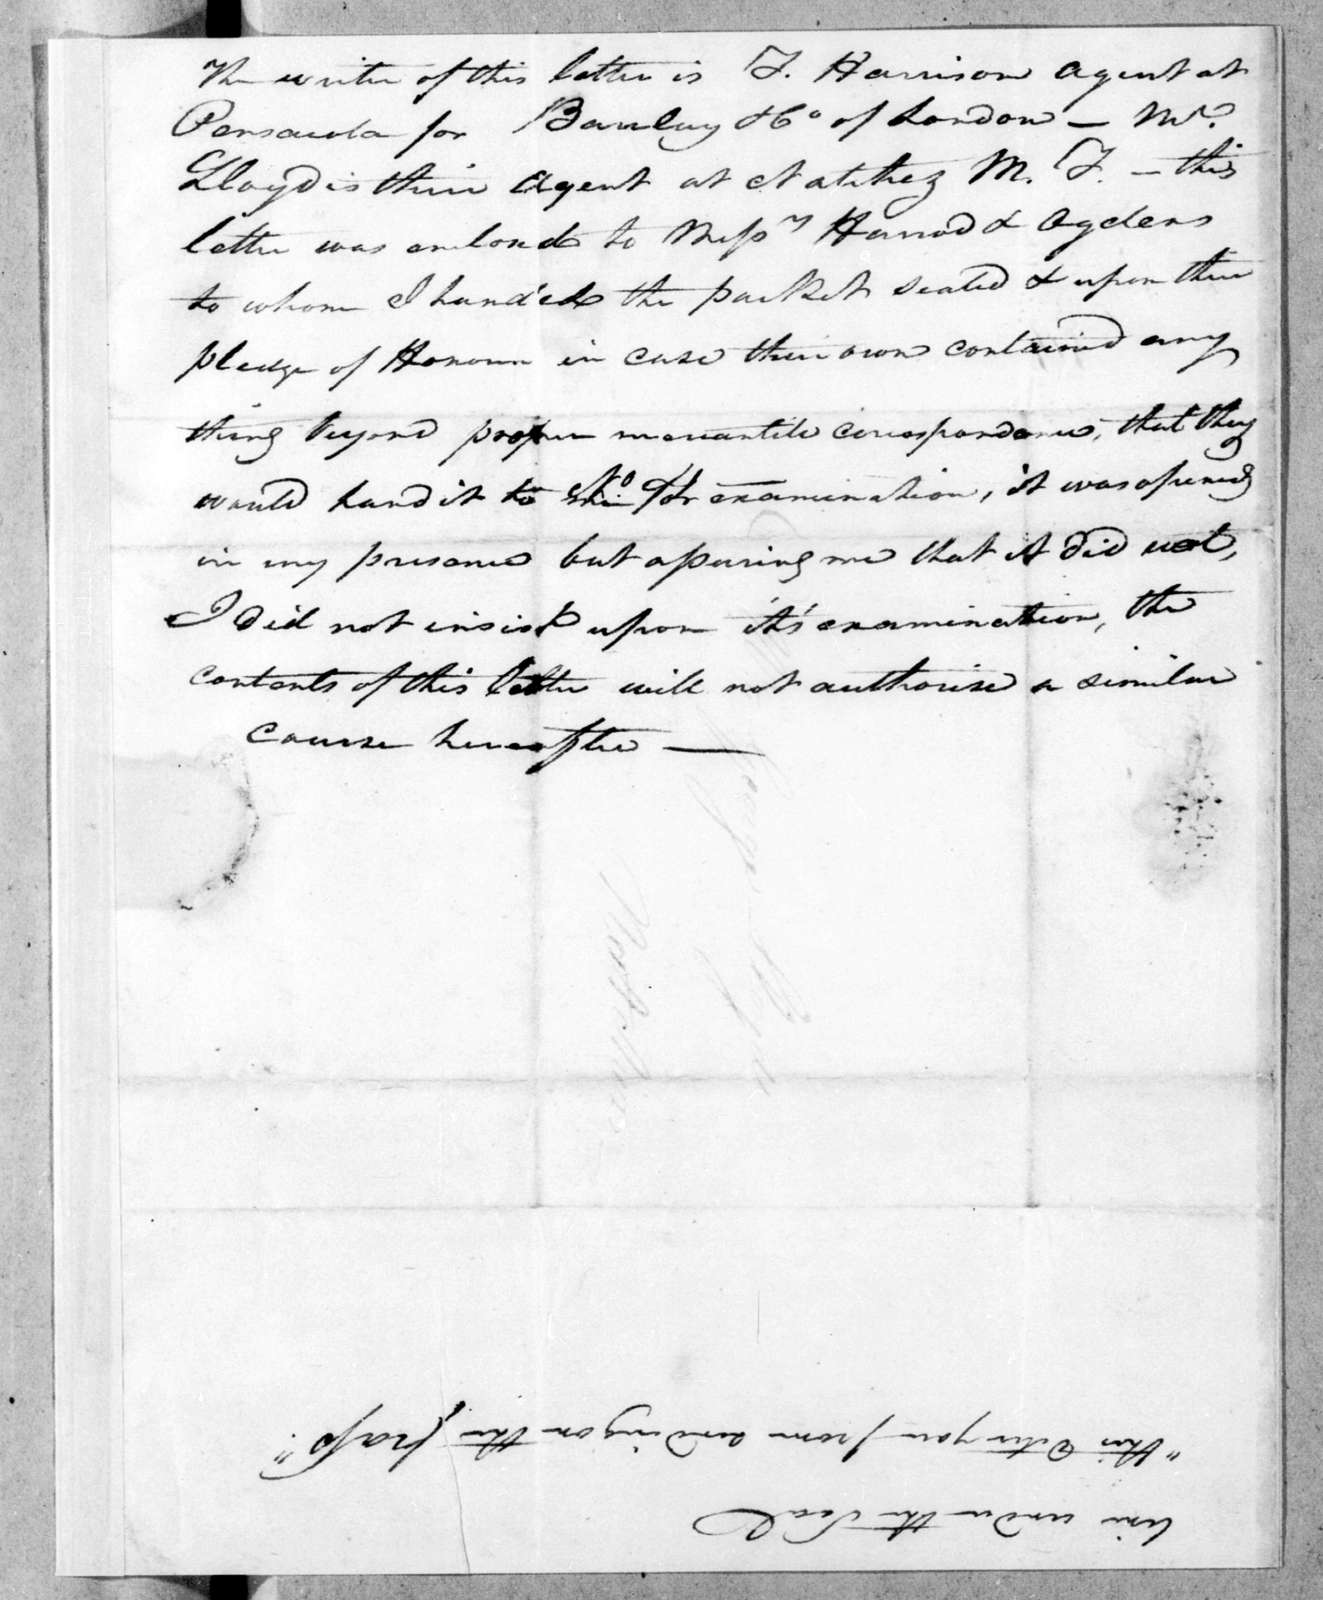 Unknown to G. Slayers, October 10, 1814